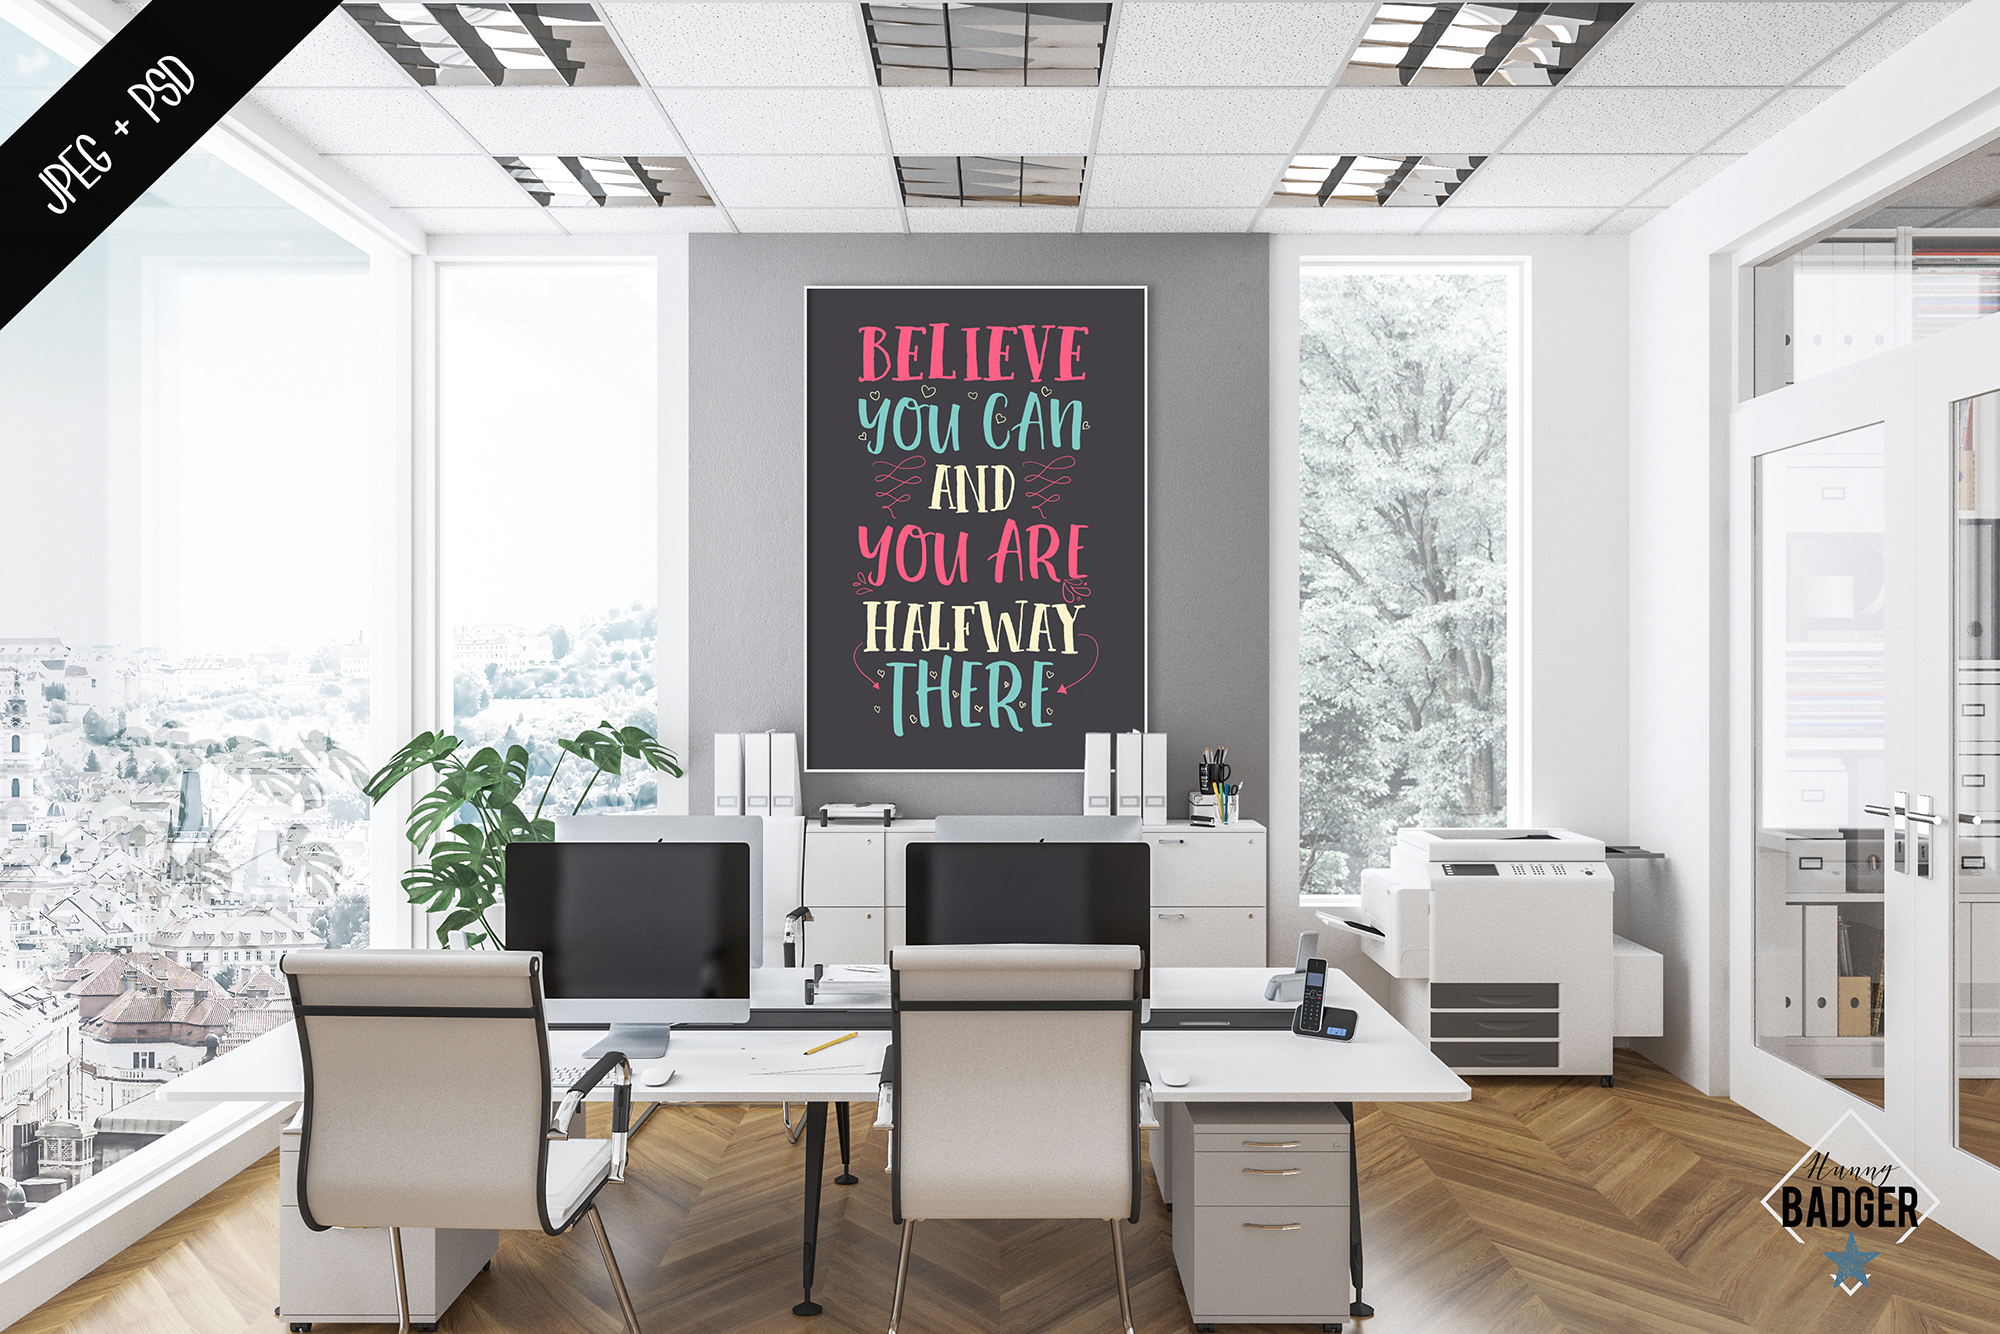 Office interior mockup - frame & wall mockup creator example image 3